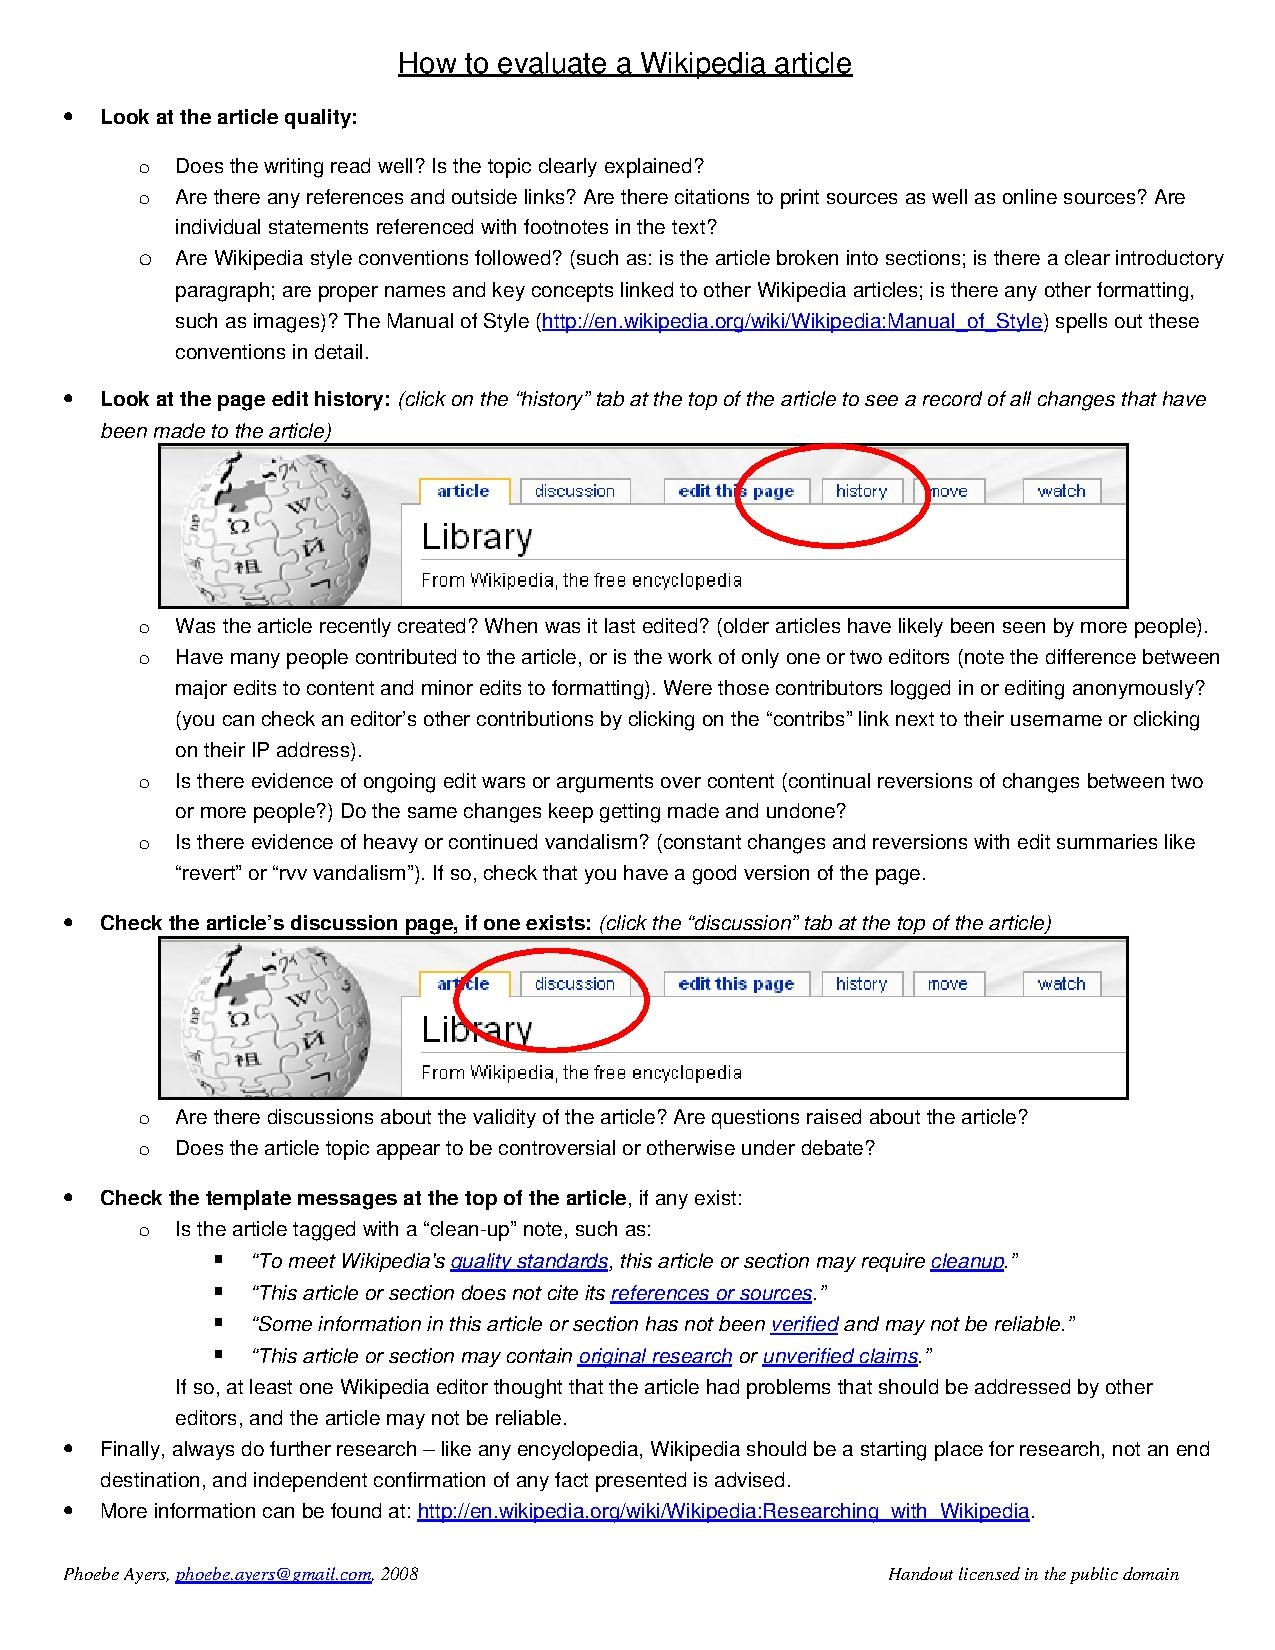 File:How to evaluate a Wikipedia Article (Handout).pdf - Wikipedia